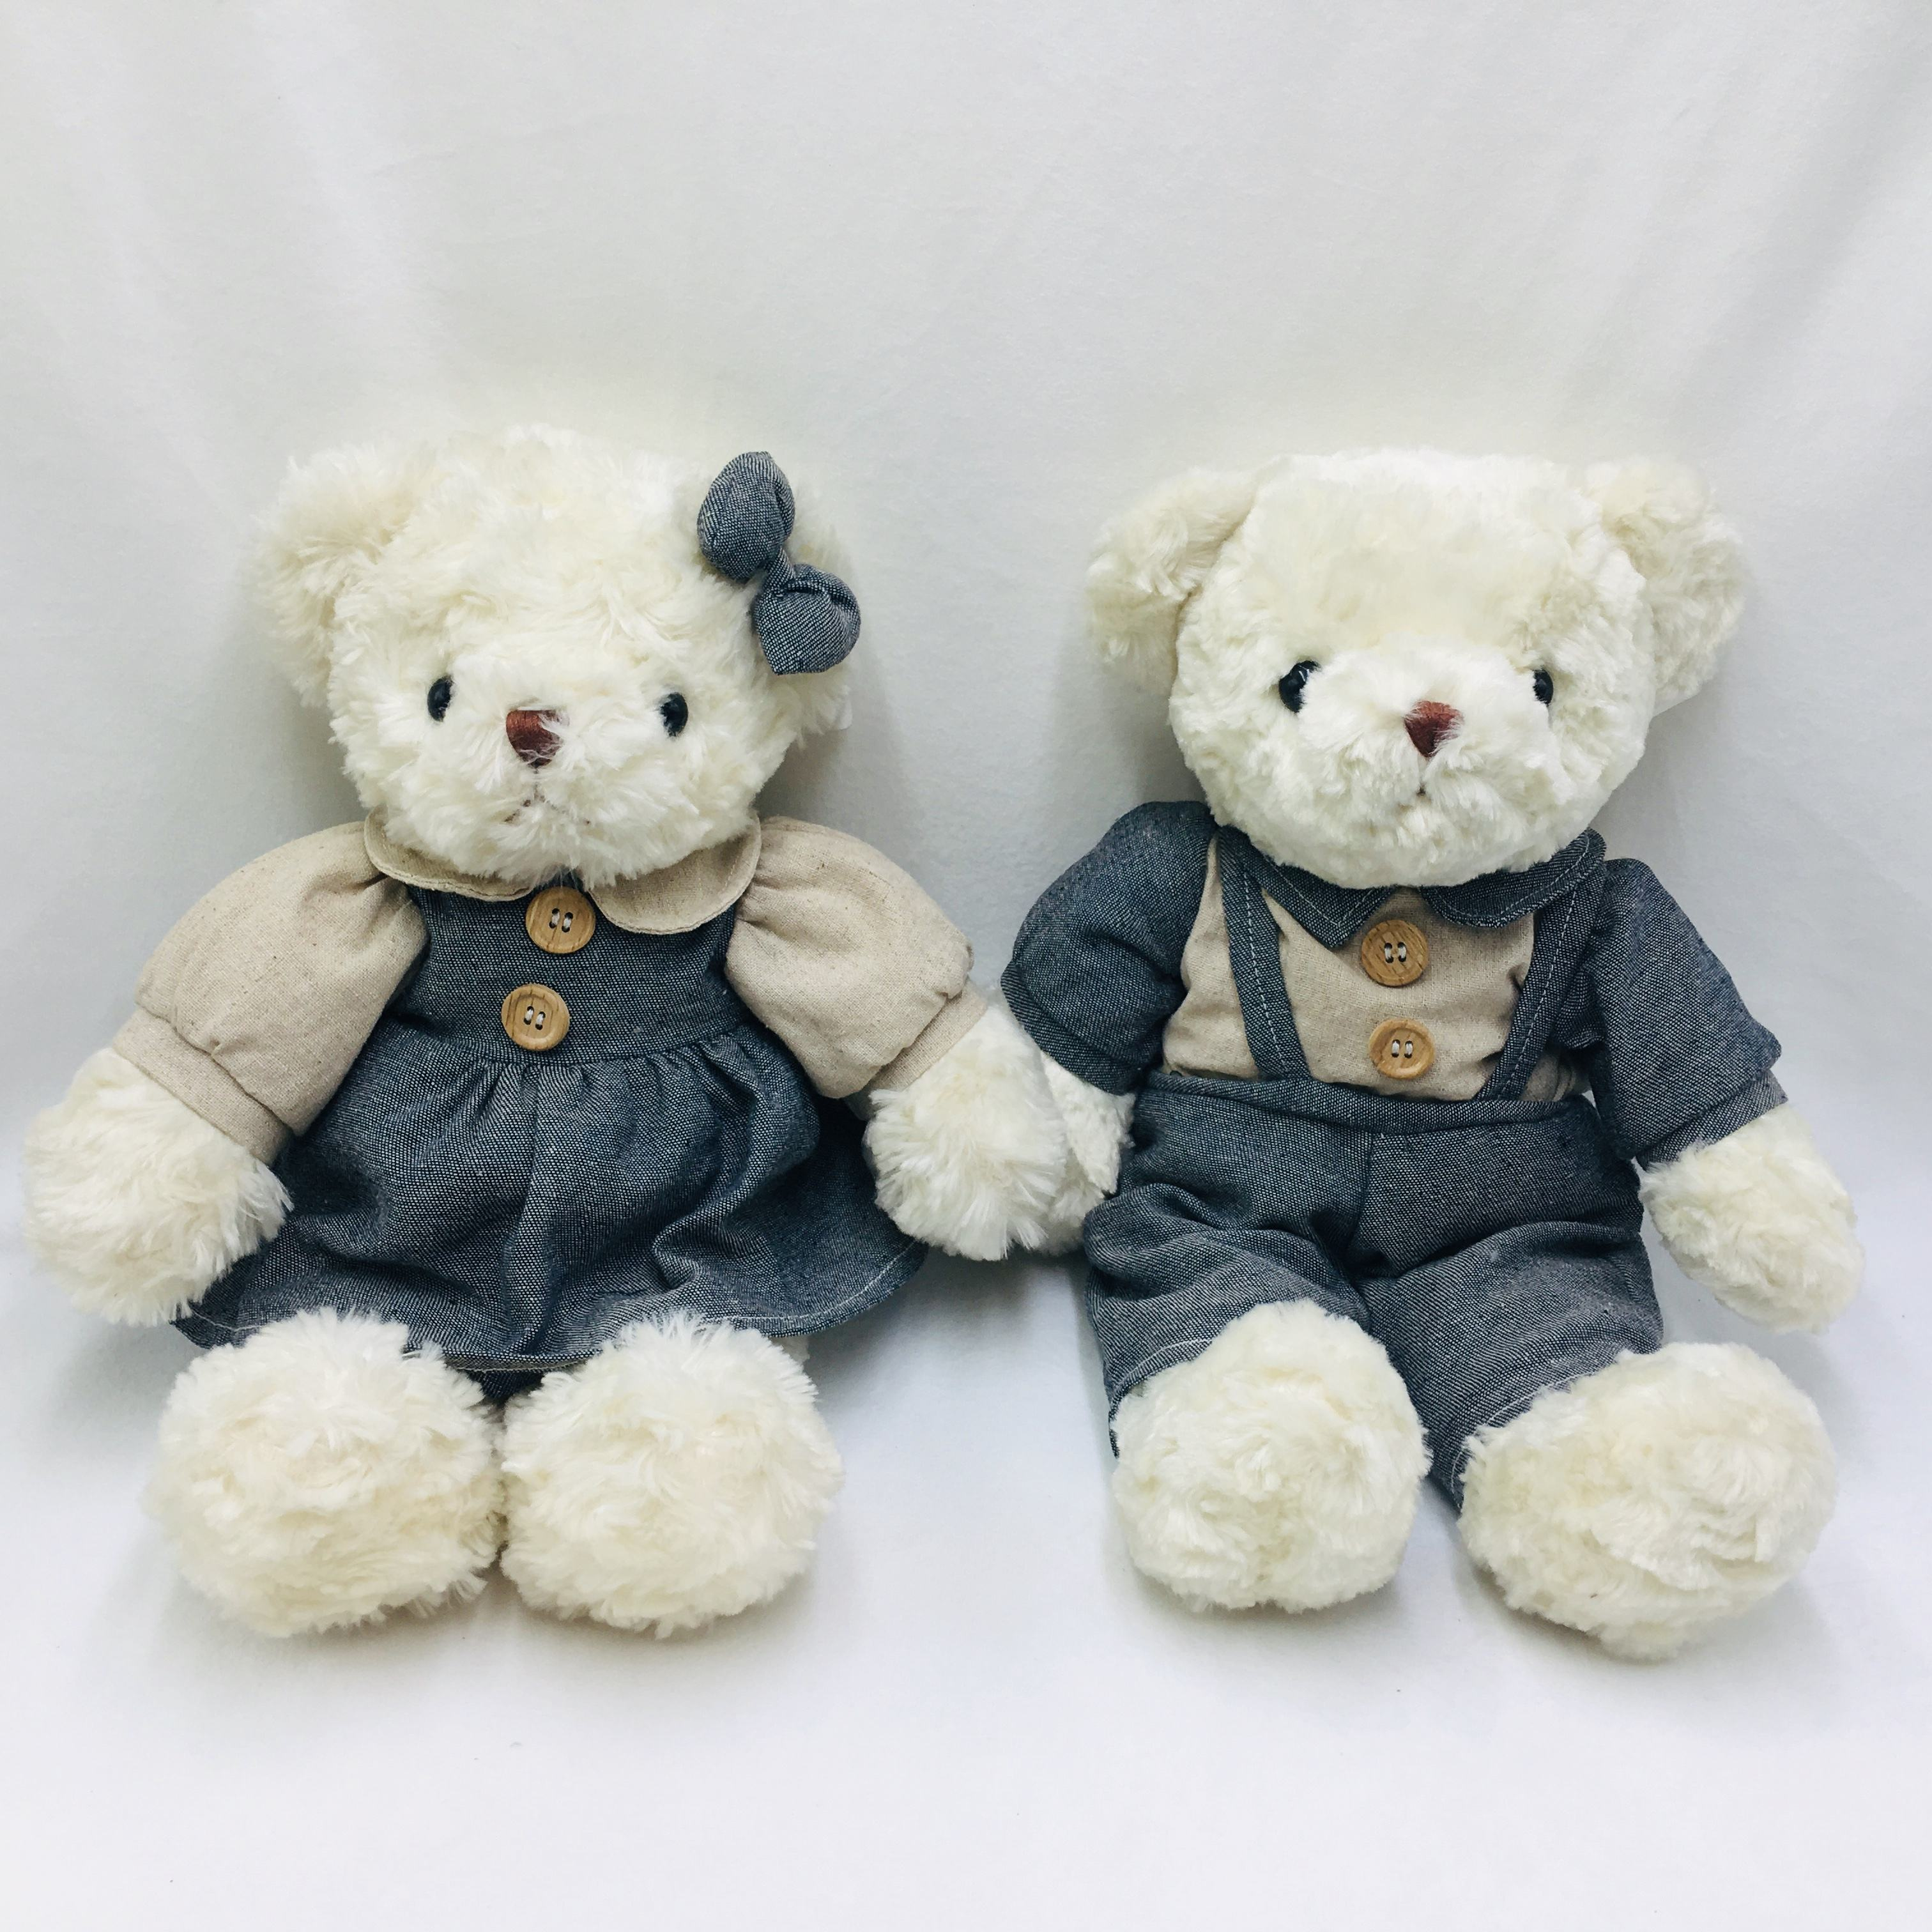 36cm White Teddy Bear Plush Toys Customized Birthday Wedding Gift Hello Kitty